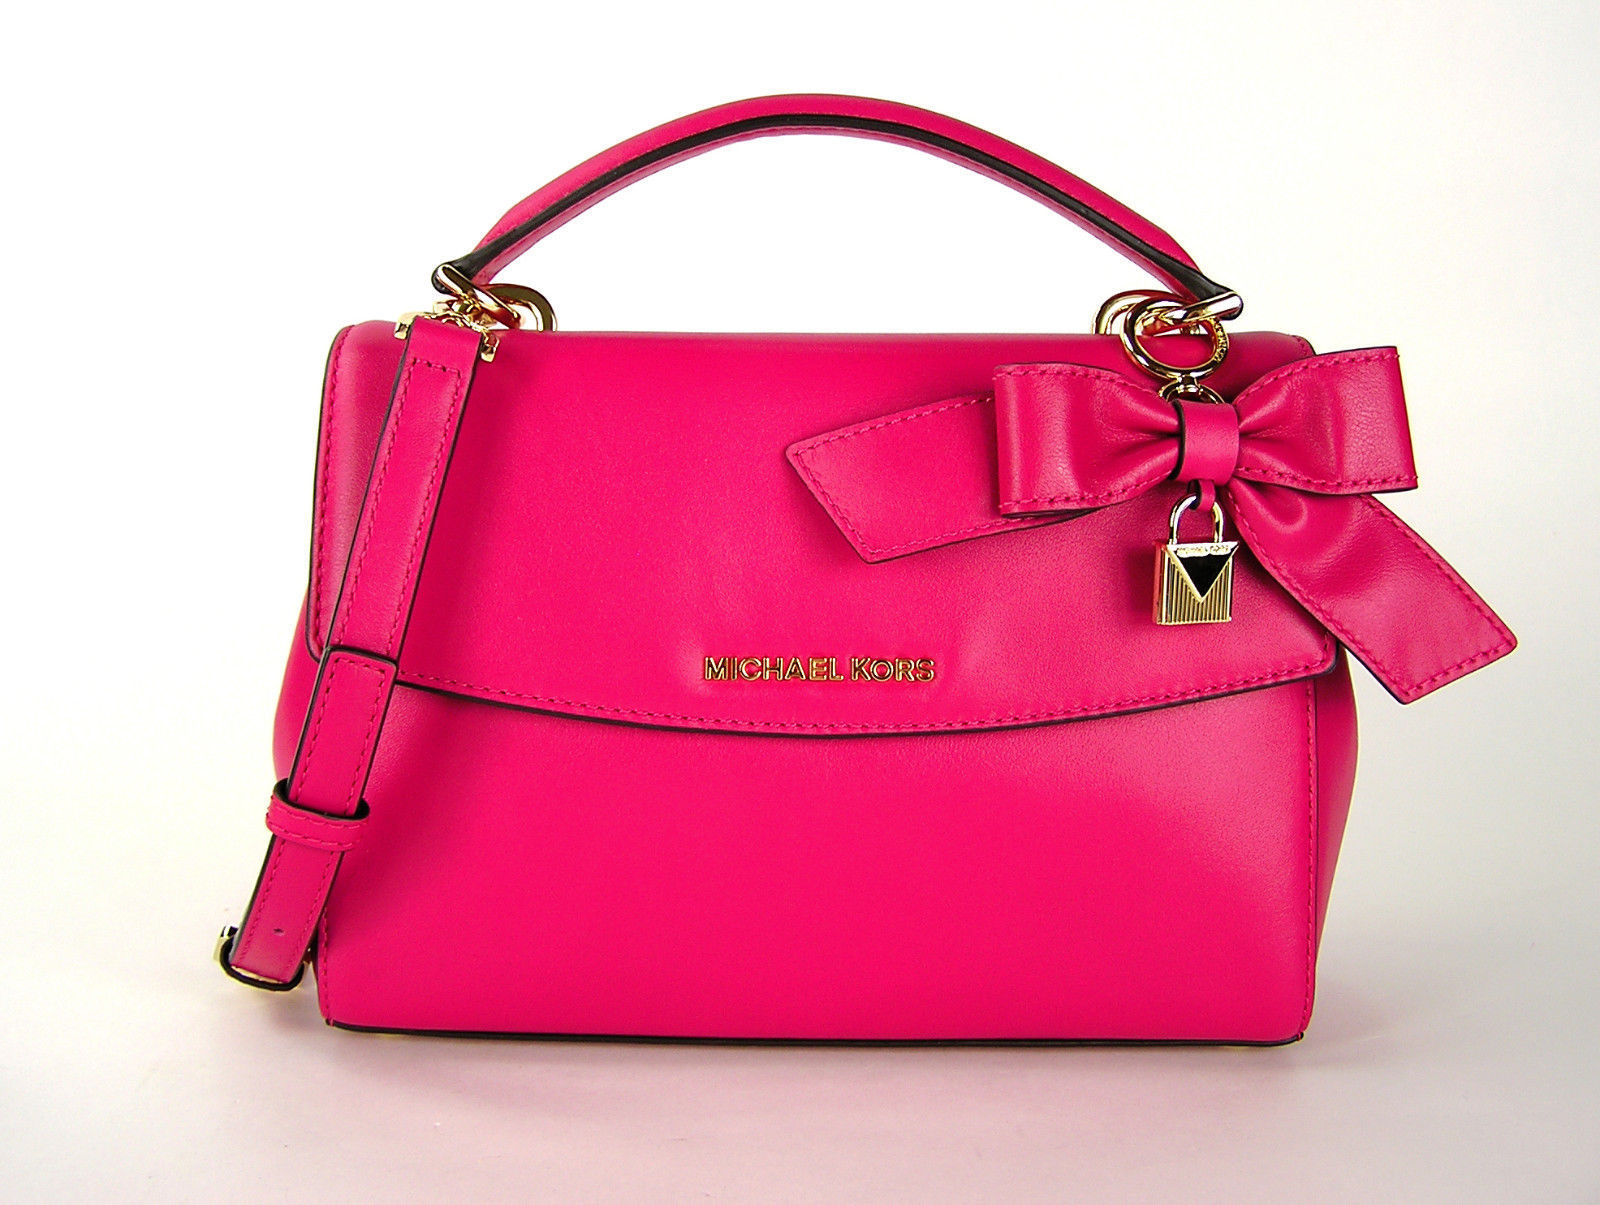 e34bd4dbe510 S l1600. S l1600. Previous. Michael Kors Ava Small Leather Top Handle Bow  Satchel Crossbody Ultra Pink NWT